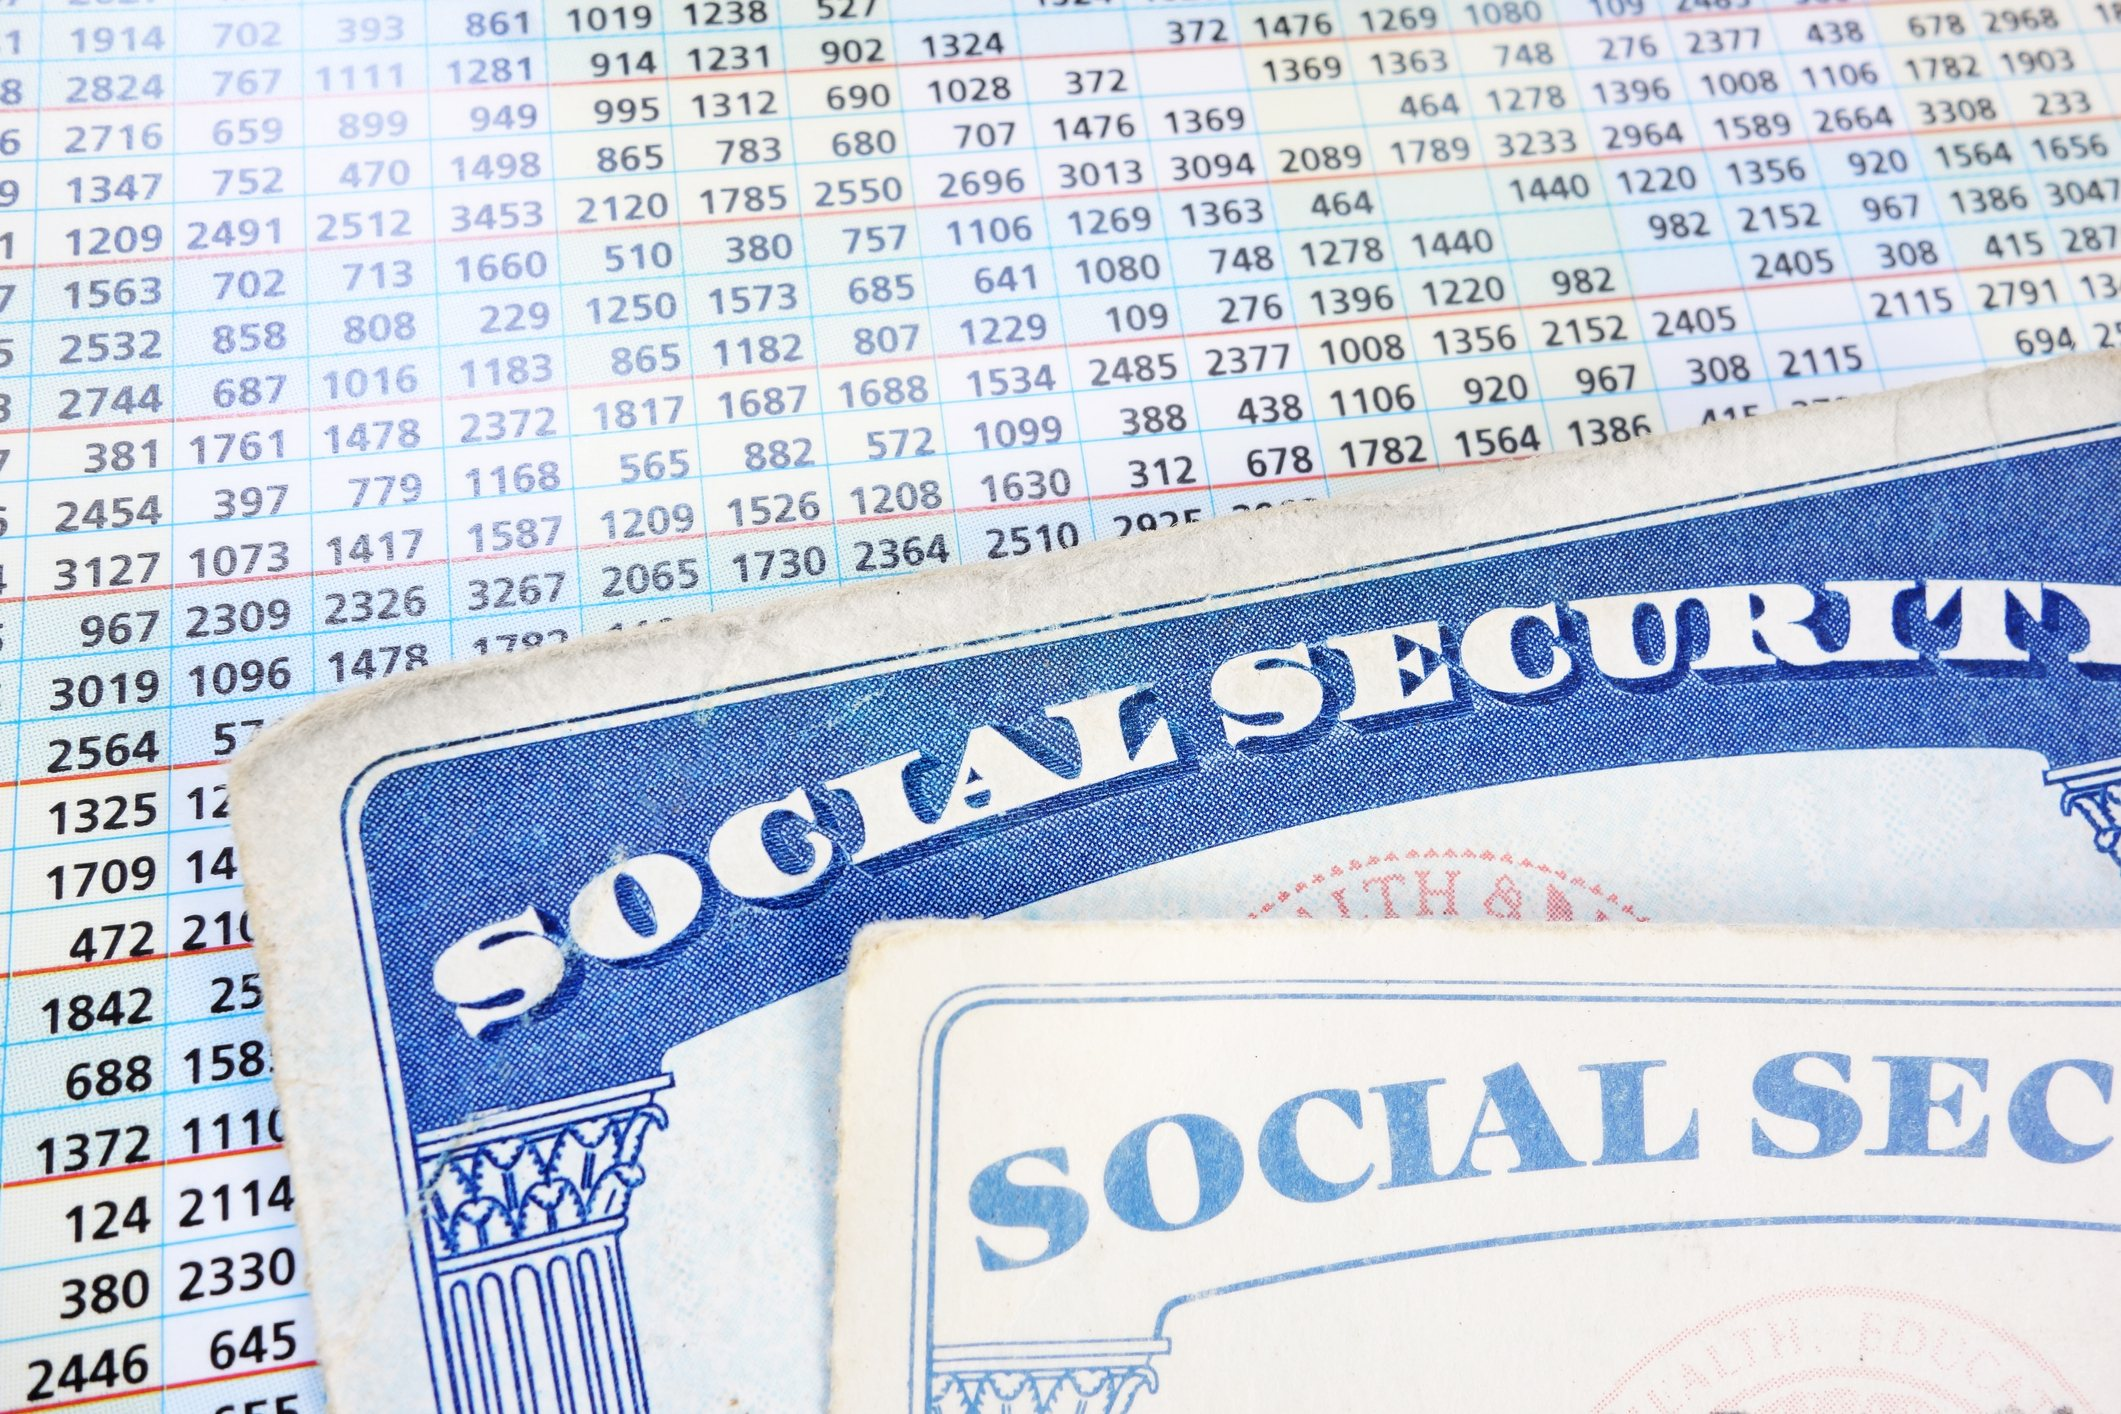 Blackbaud mum on which universities had Social Security data stolen | EdScoop